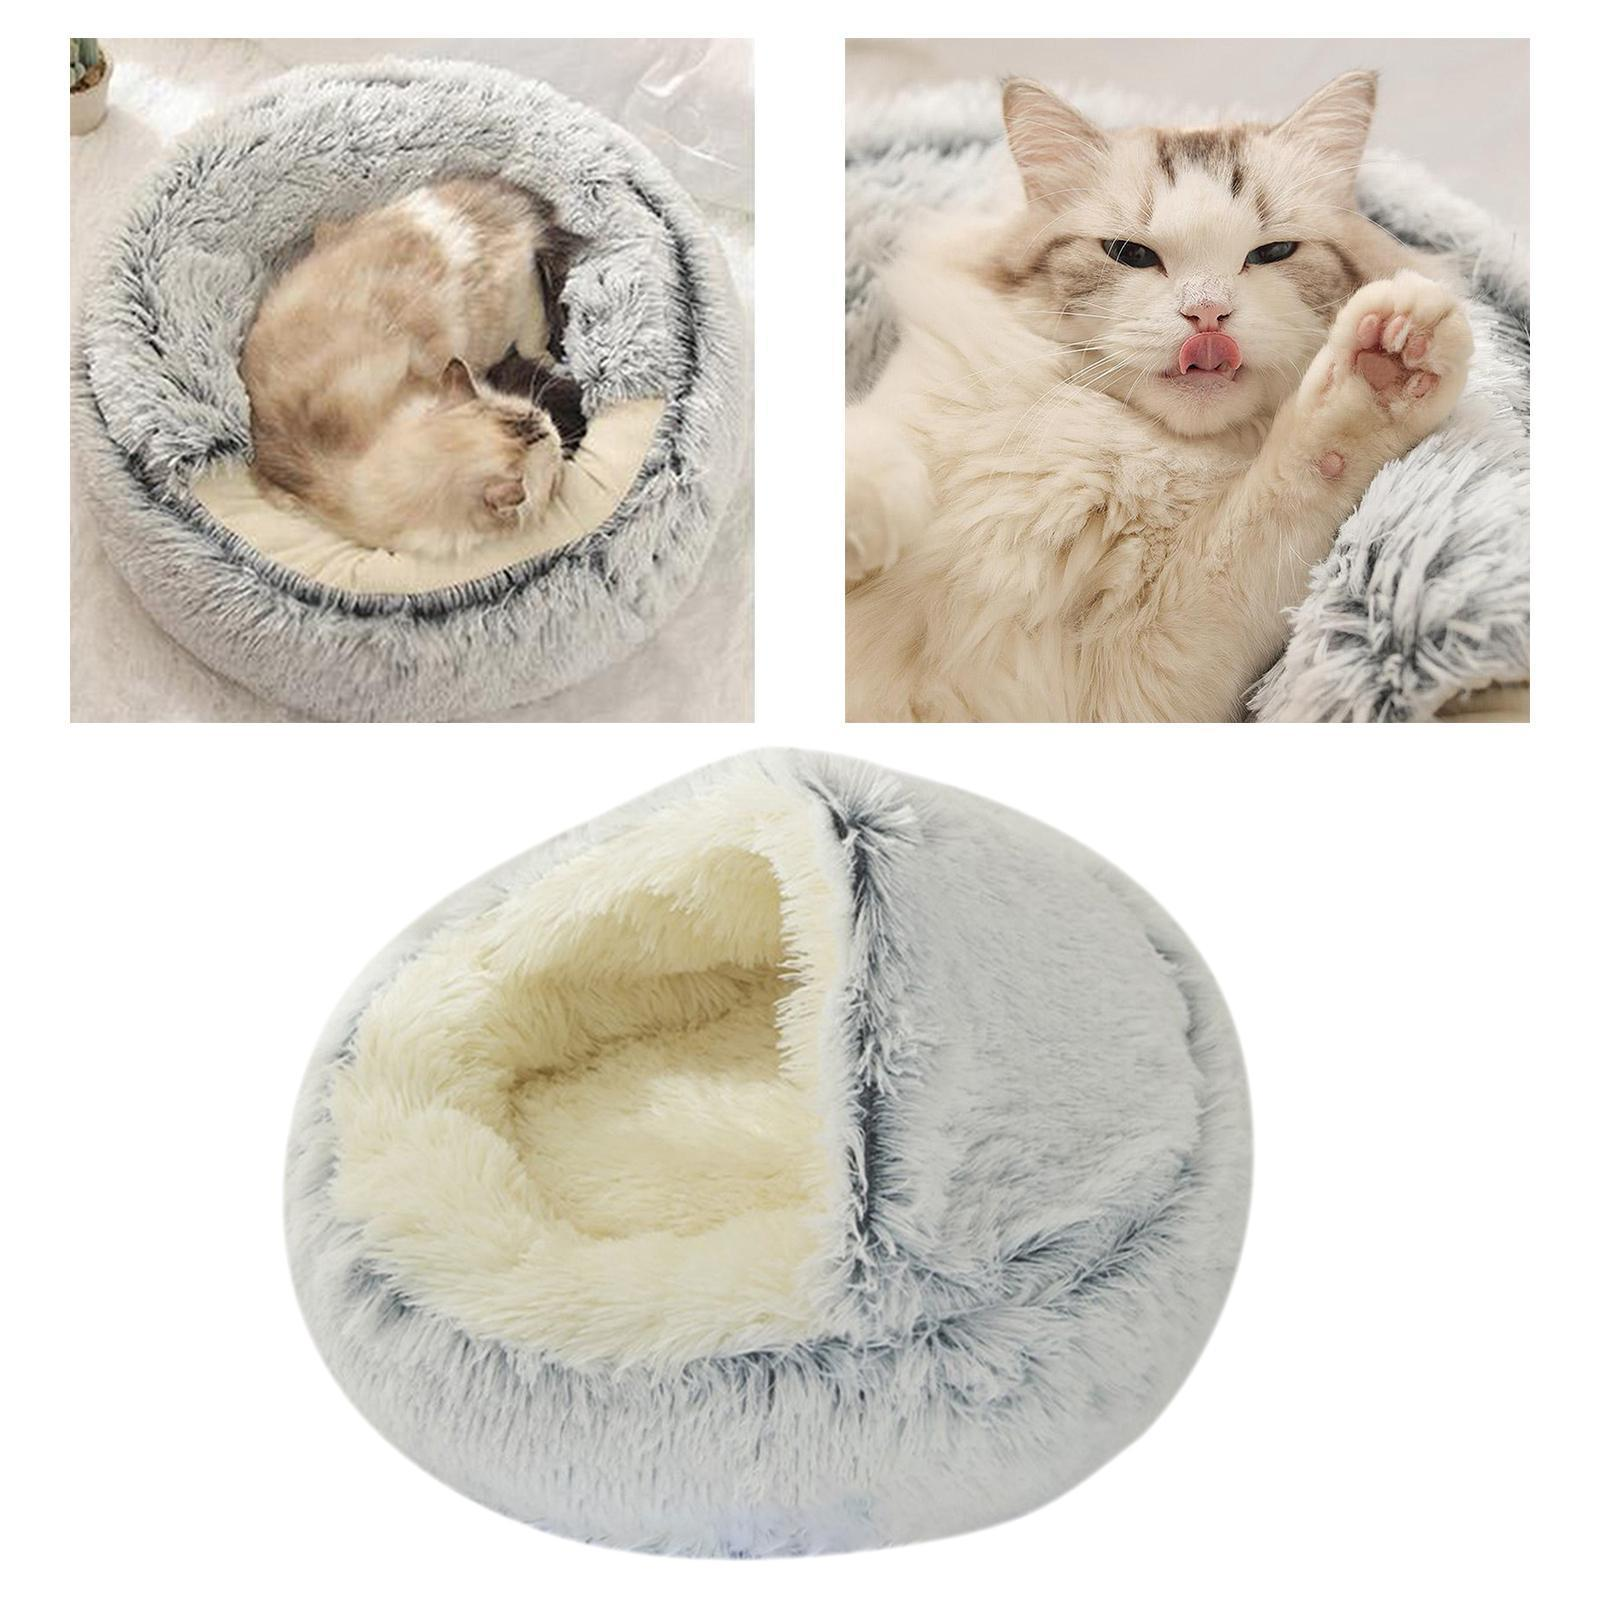 miniature 52 - Pet Chien Chat Calmant Lit Rond Nid Chaud En Peluche Confortable de Couchage